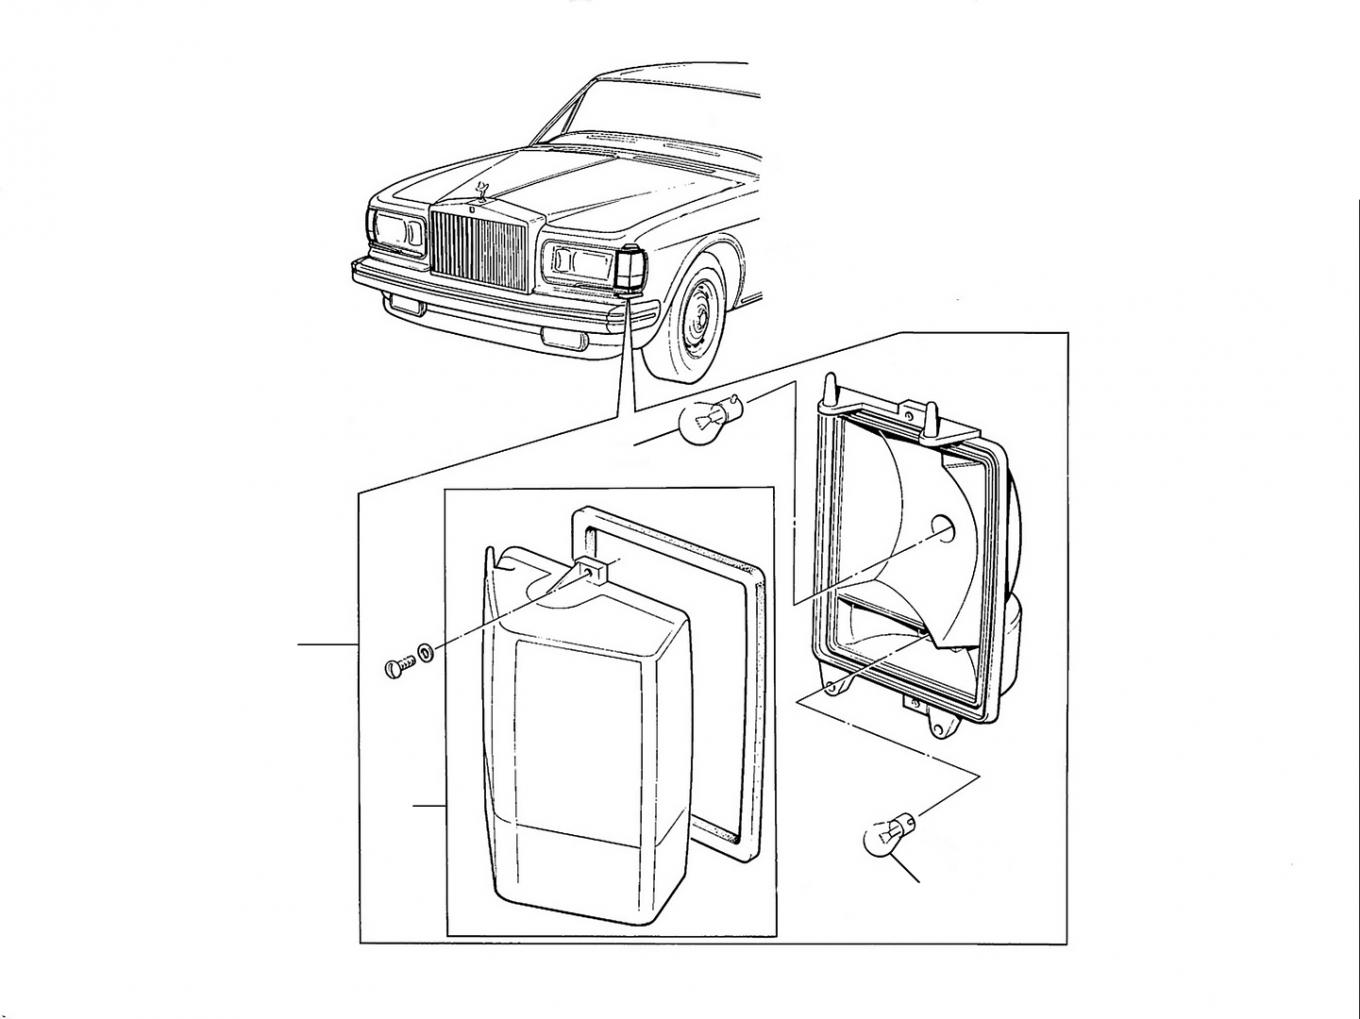 40681 Front indicator - Front Indicator Amber Lens (USA cars)